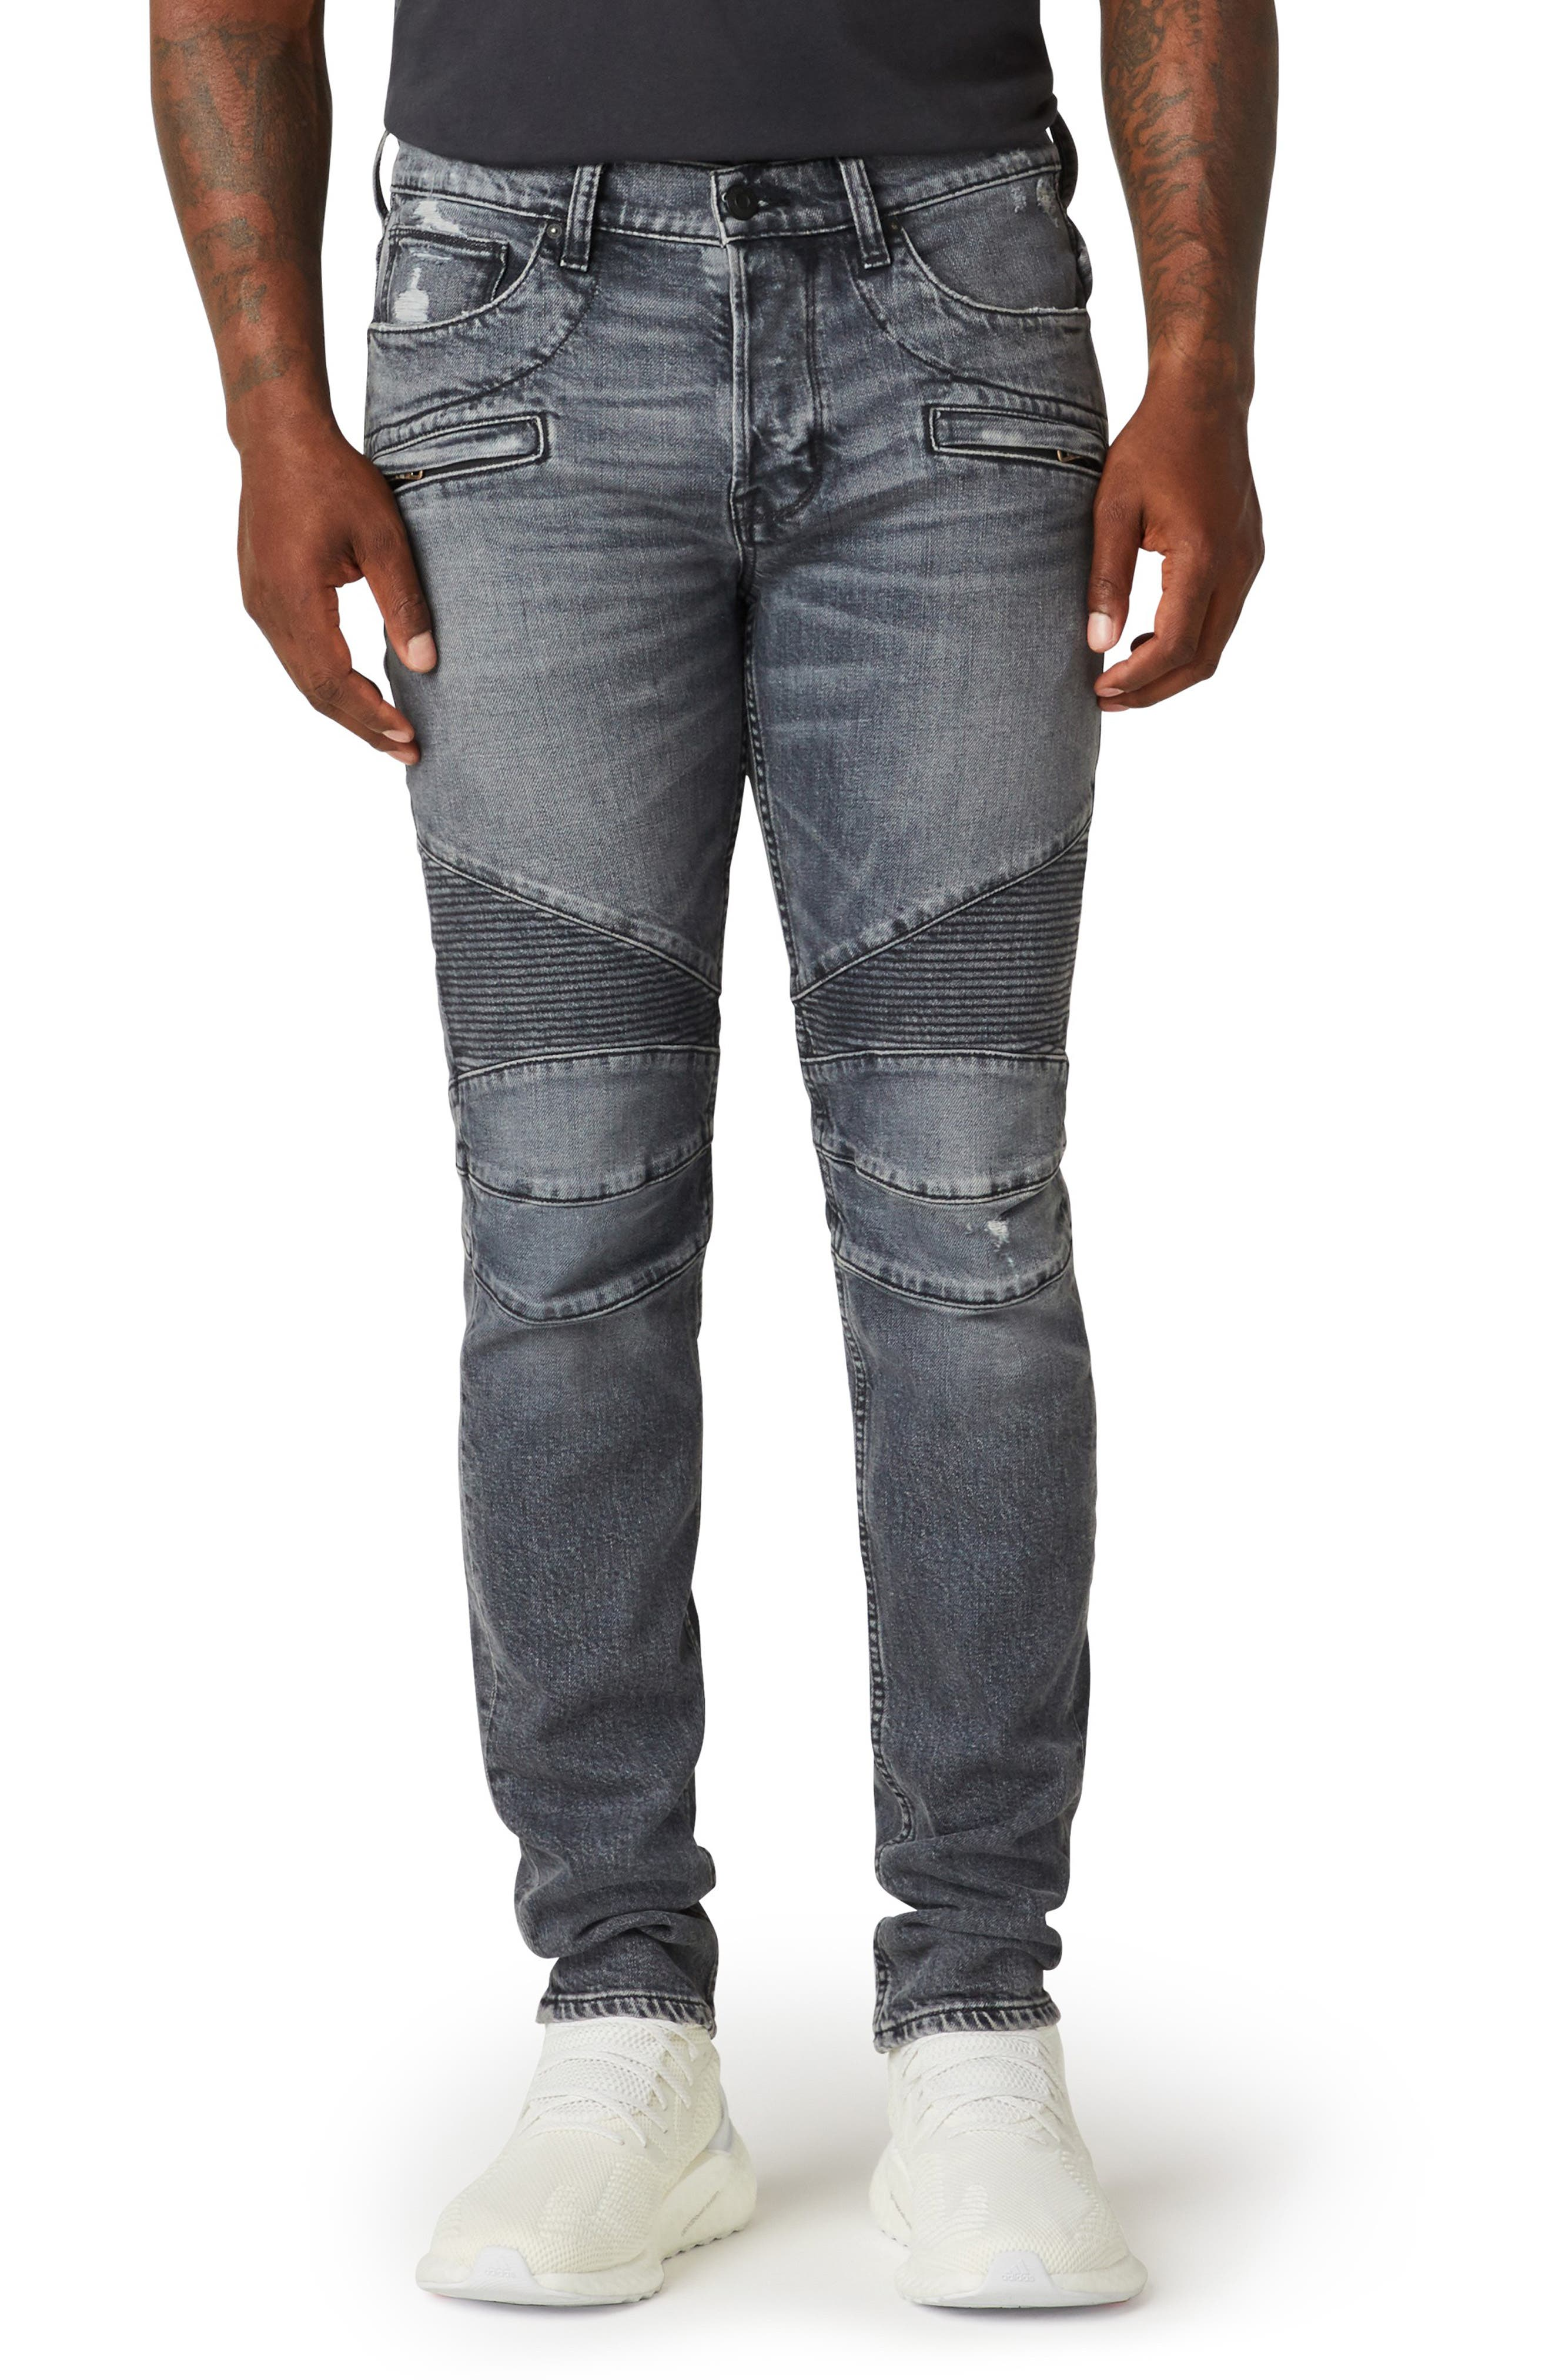 Nicks, scuffs and bleachy sanding rev up the moto attitude of panel-cut biker jeans sporting tough ribbing right above the knees. Style Name: Hudson Jeans The Blinder V.2 Skinny Fit Distressed Biker Jeans (Kit). Style Number: 6099084. Available in stores.